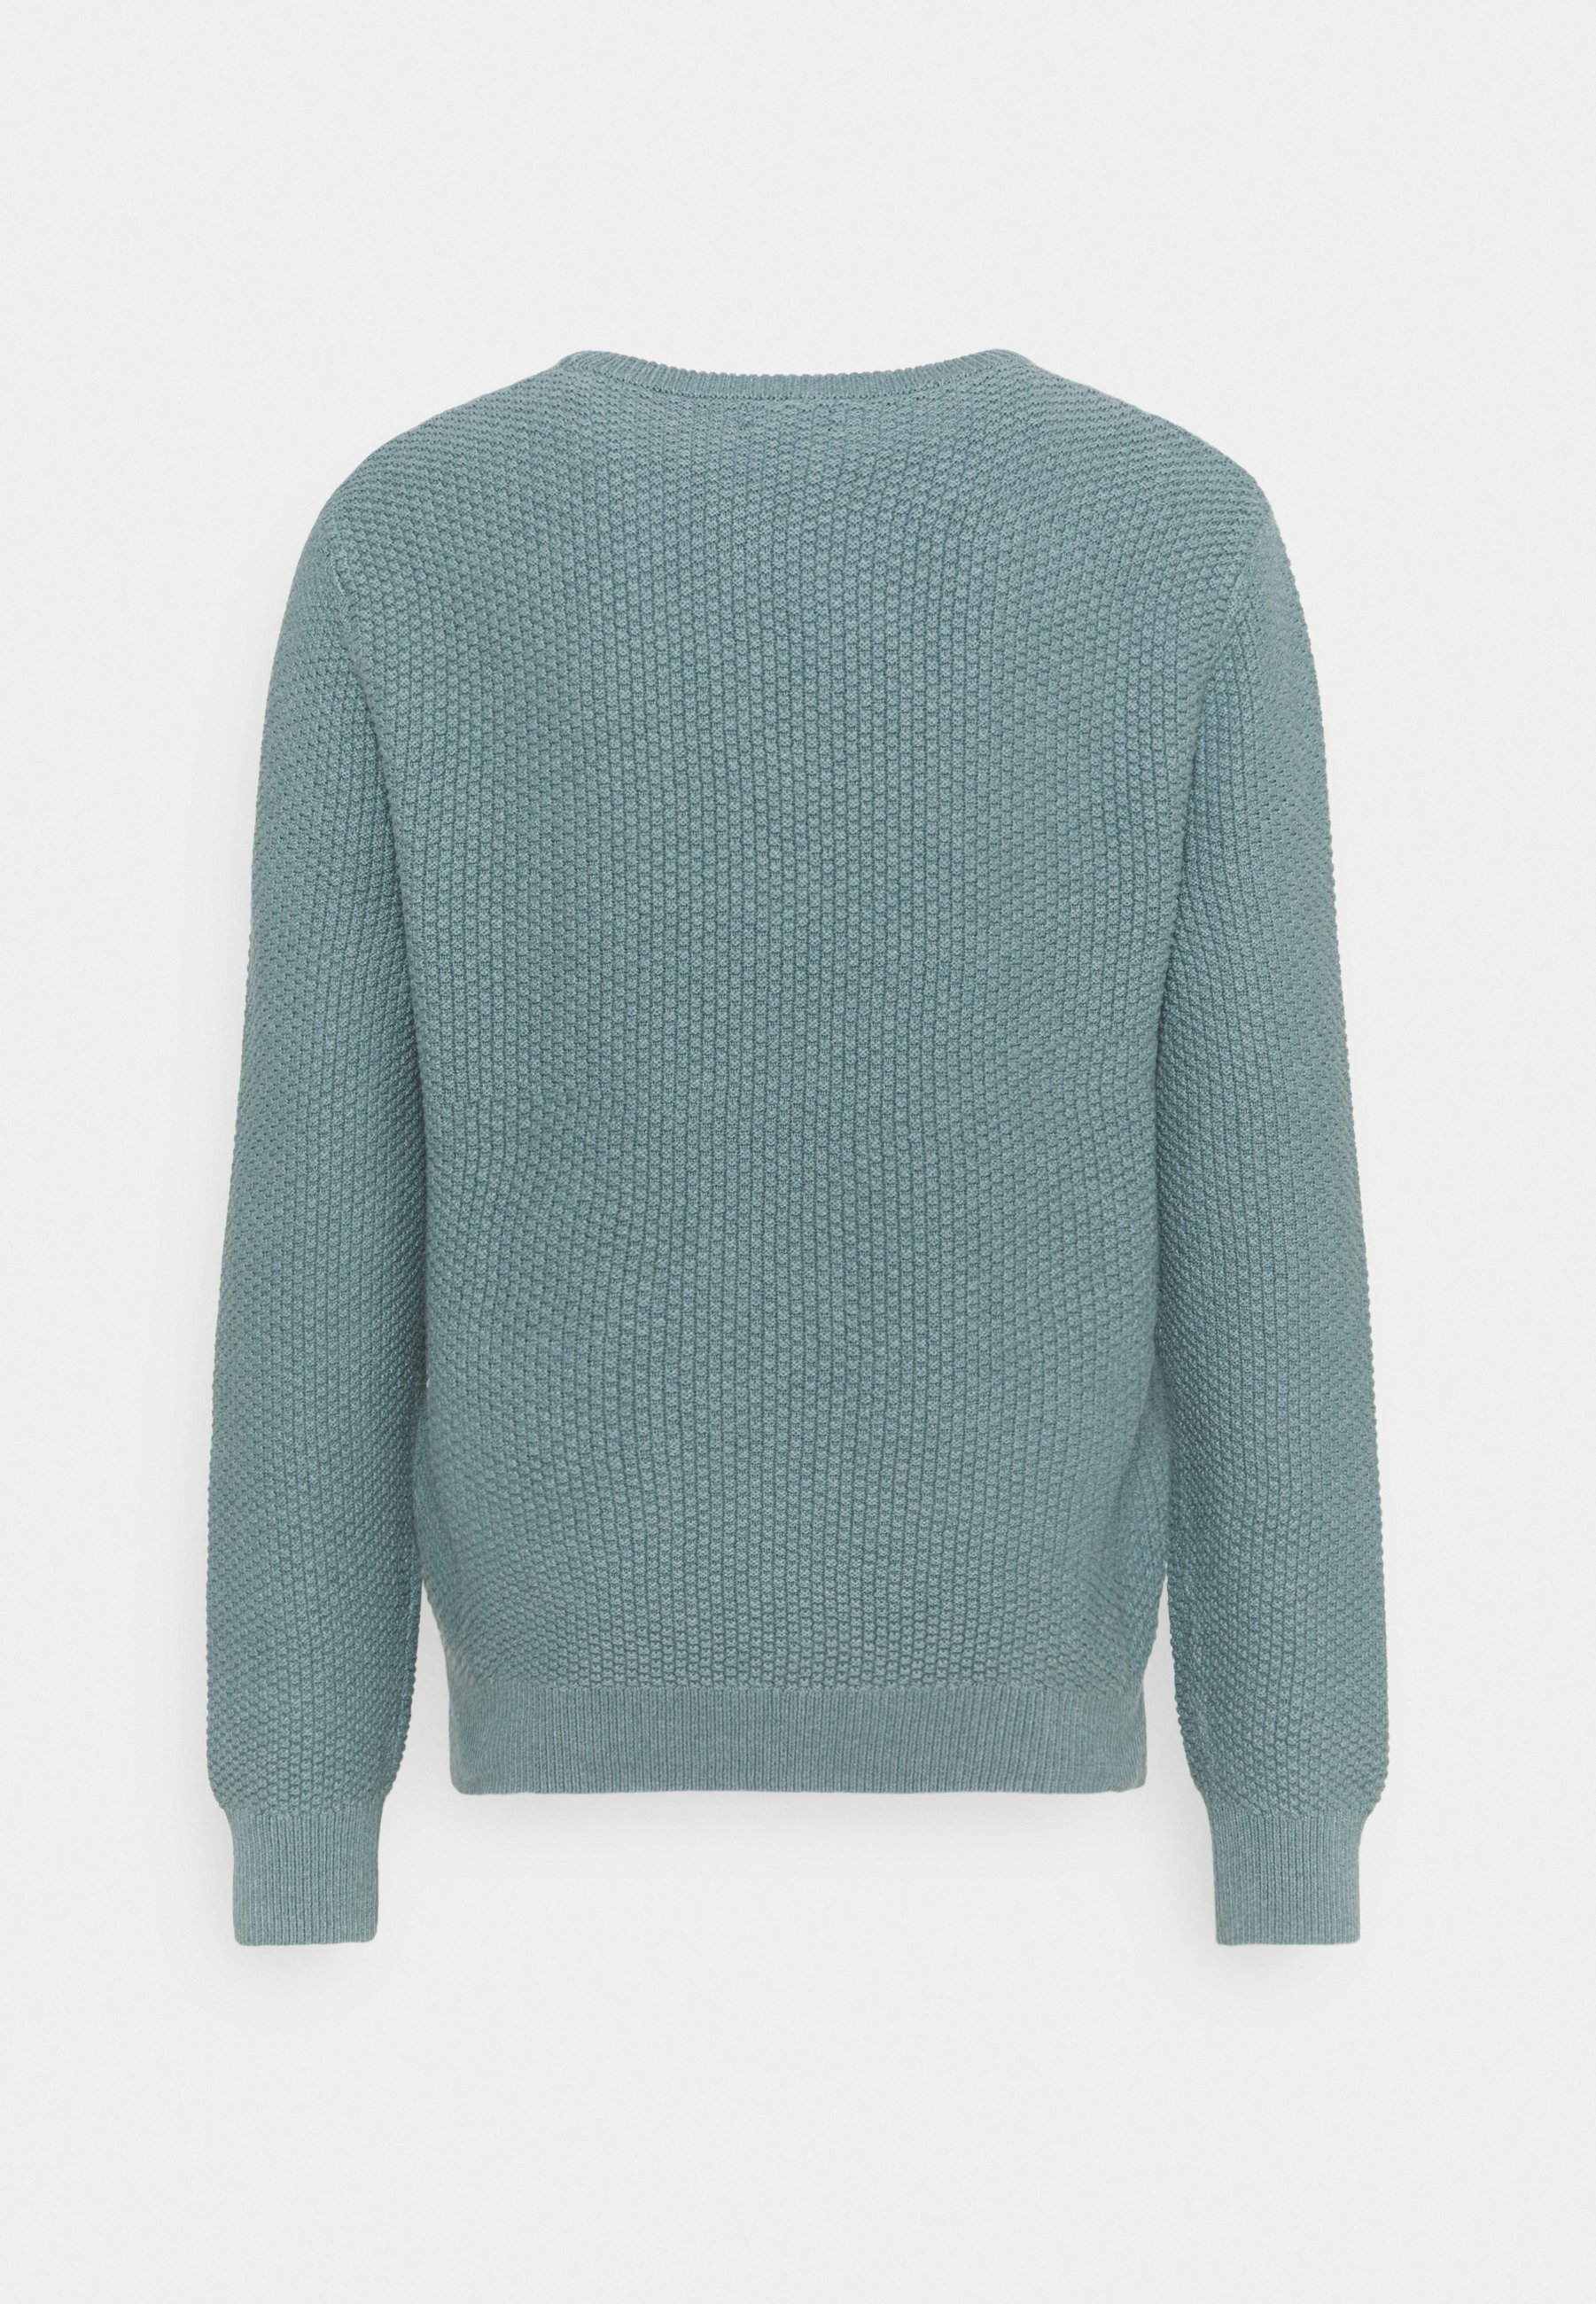 J.CREW Pullover - mineral